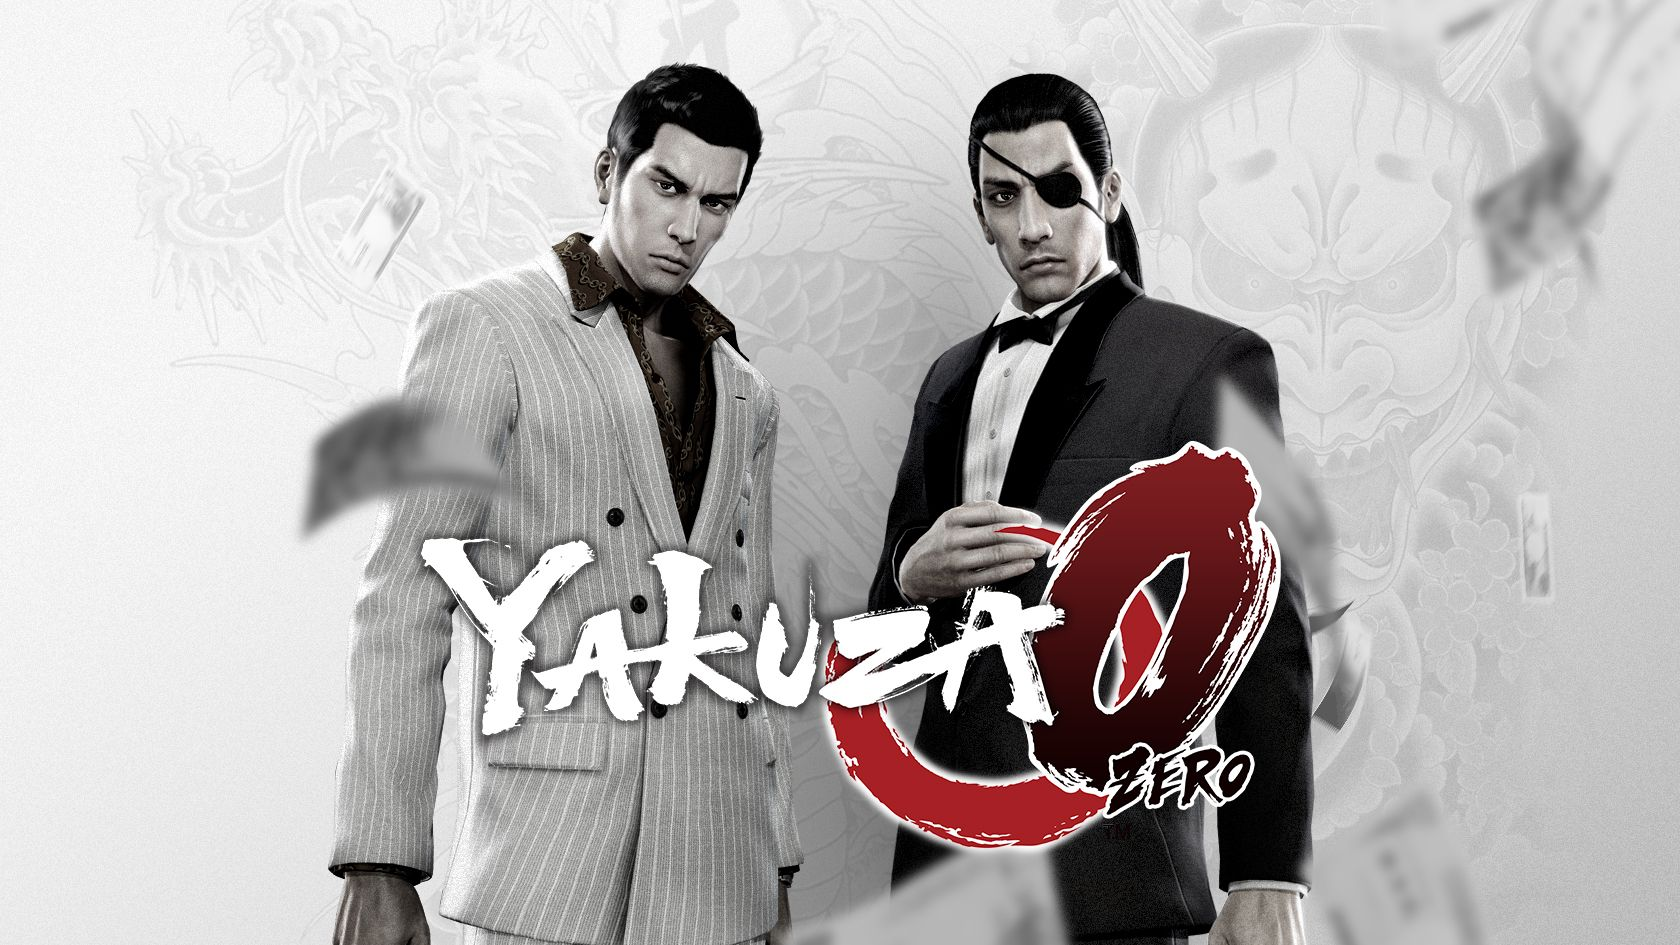 Game review of Yakuza 0: the bandit Tokyo 80s